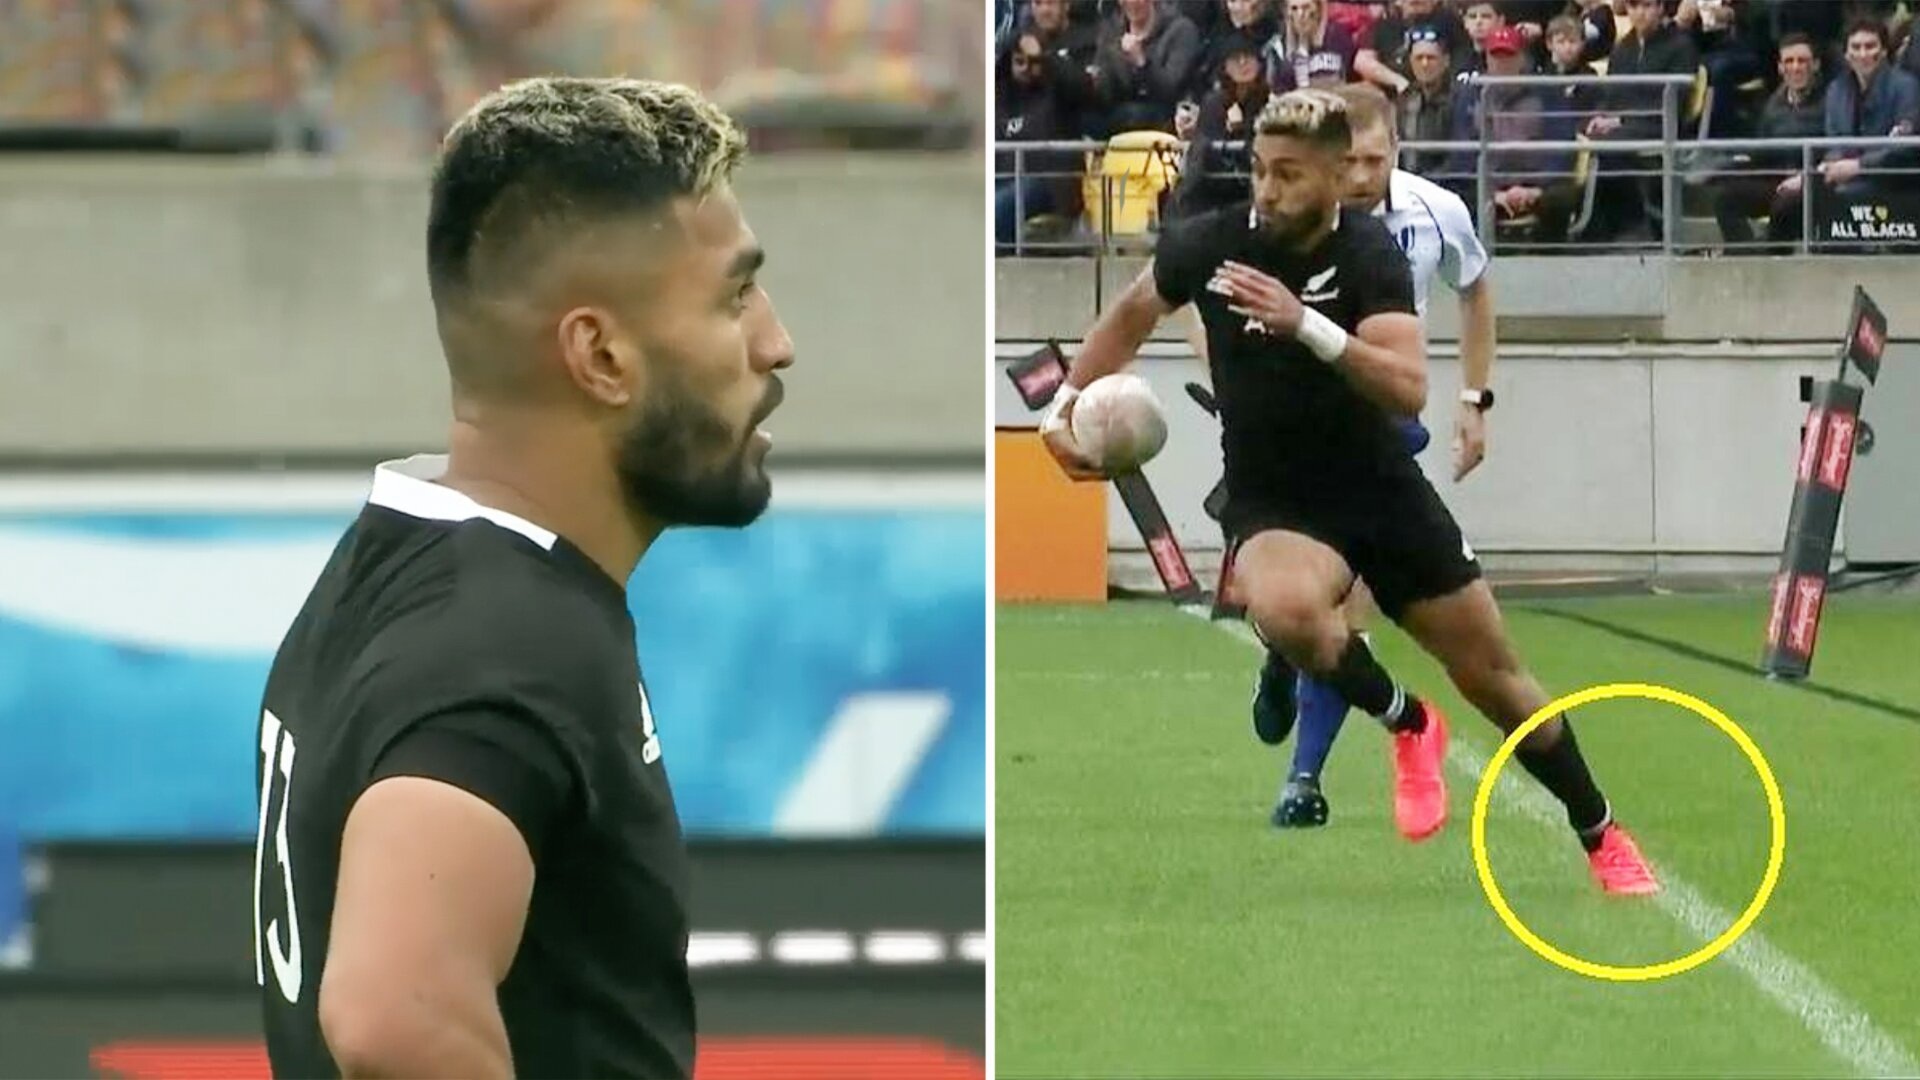 Calls for Rieko Ioane to receive lengthy ban after not admitting to blatant foot in touch